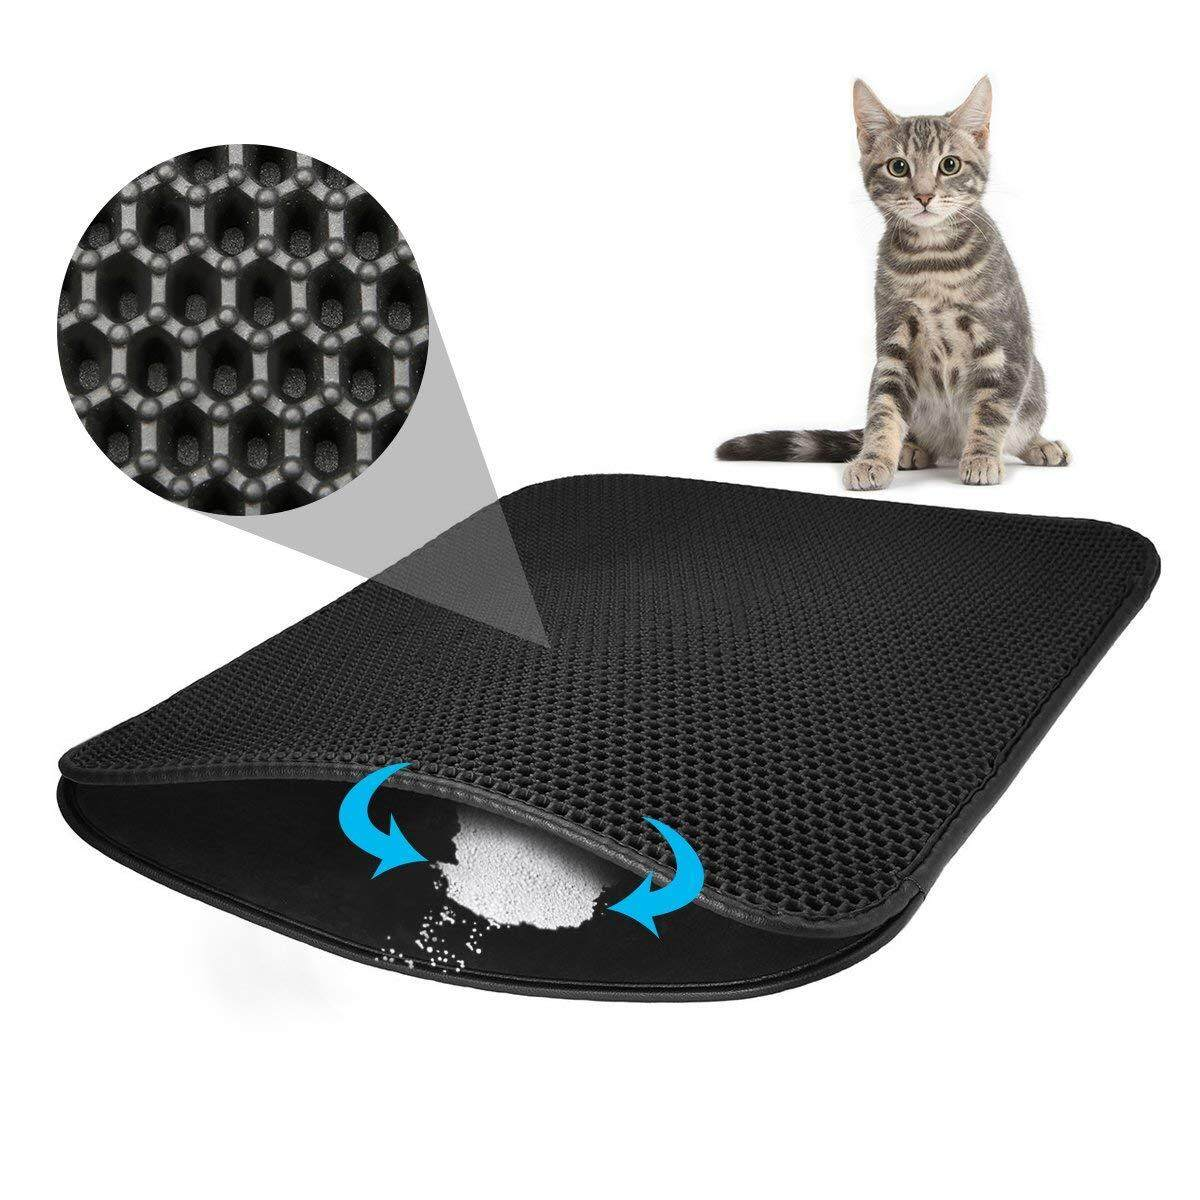 Dustbin Pad, Cat Litter Mat 75x 55cm Trash Can Pad Honeycomb Design Trash Can Carpet Waterproof Double Layer Design Honeycomb Cat Litter Mat Black By Ycitc.